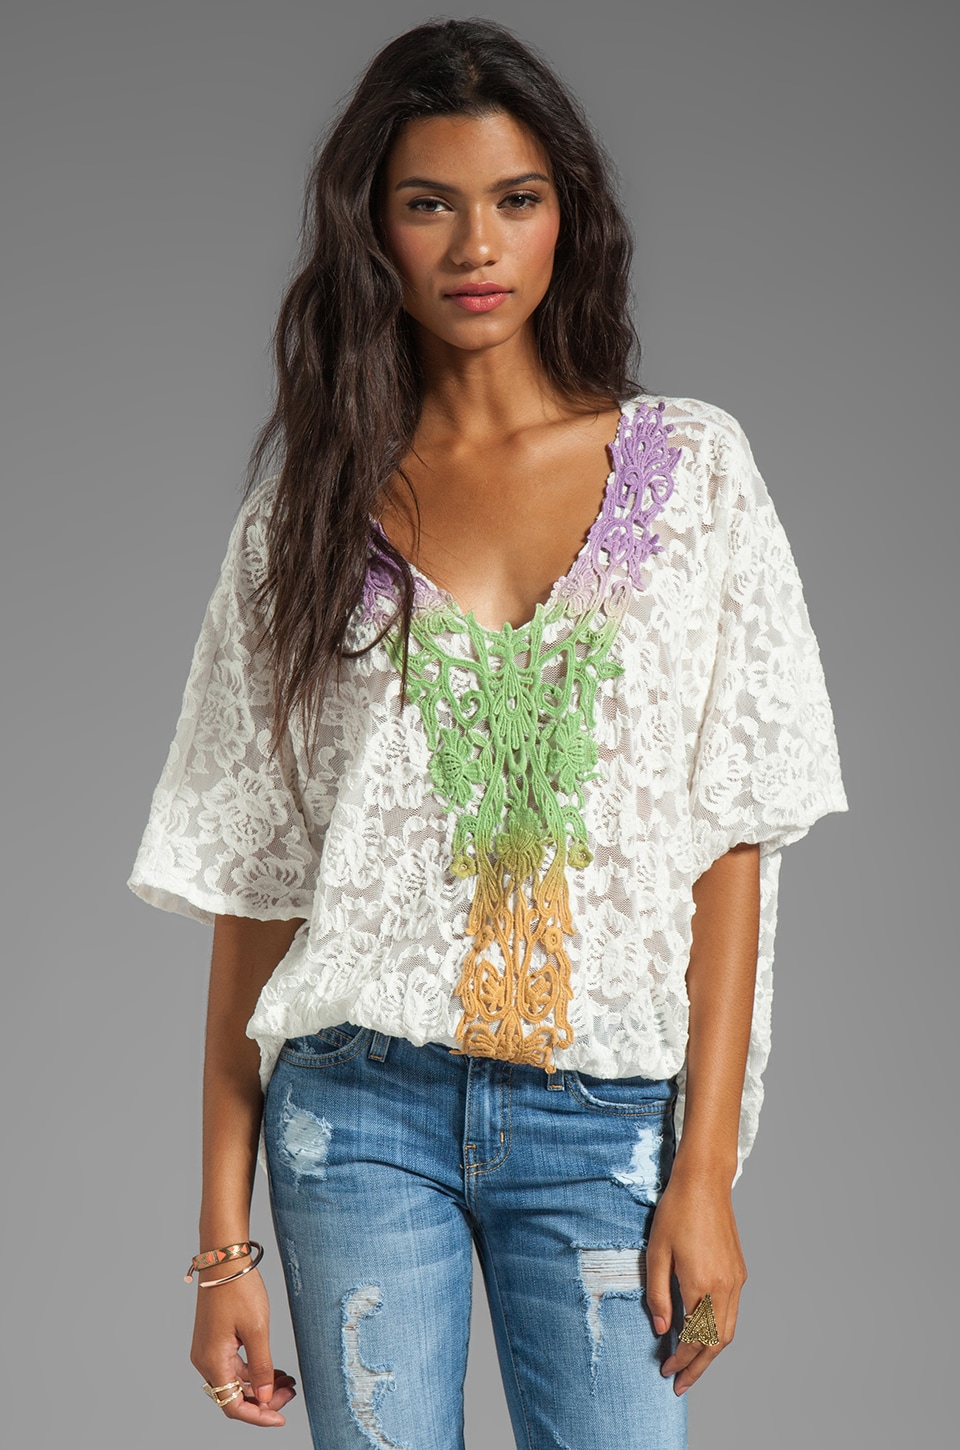 VOOM by Joy Han Kylie Kimono Top in White